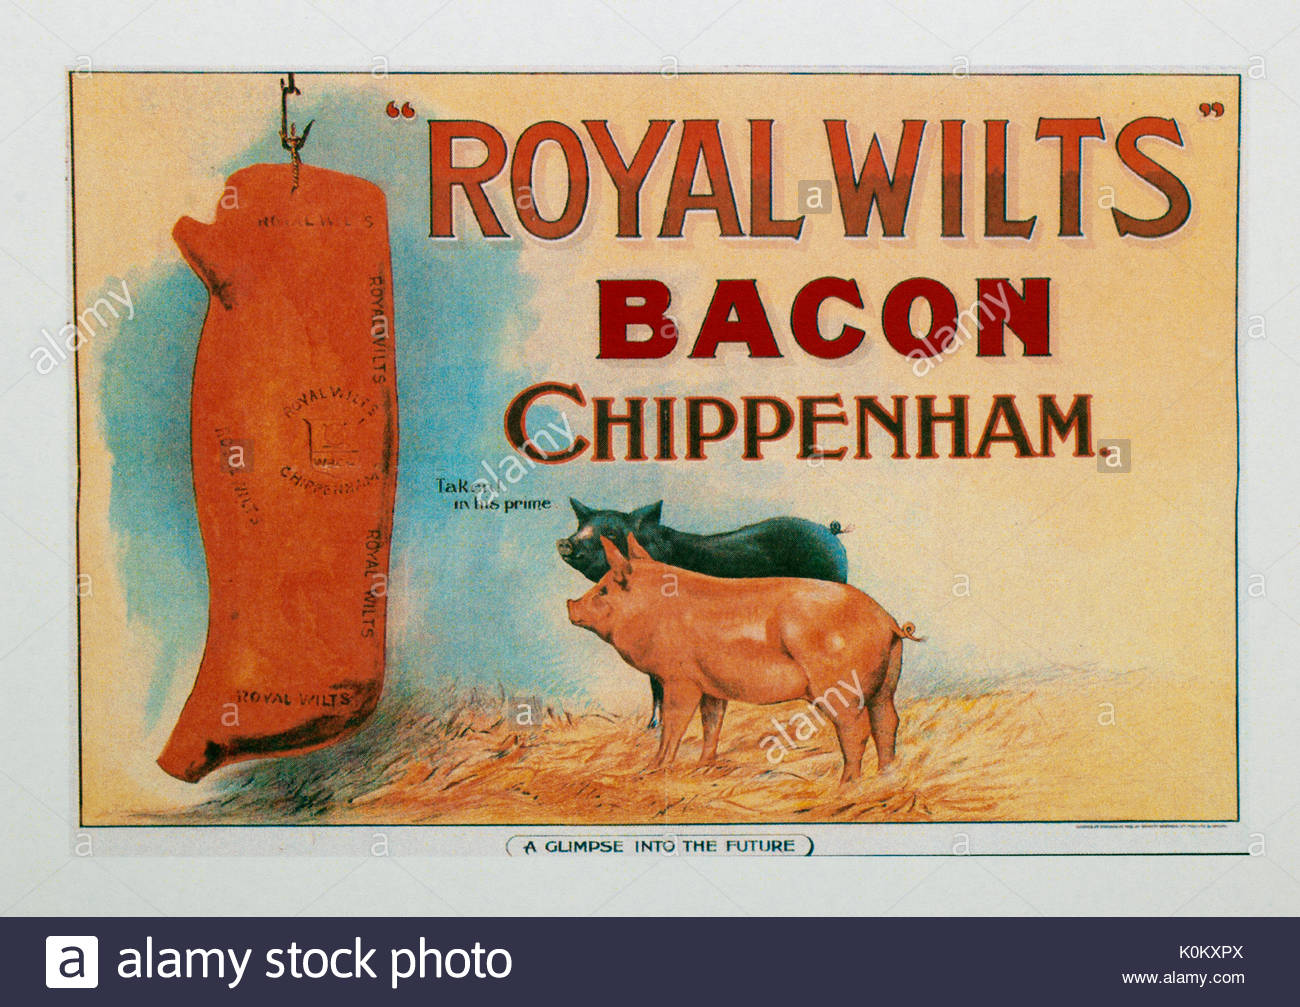 Vintage Food Advertisement Poster Advertising Royal Wilts Bacon Stock Photo Alamy